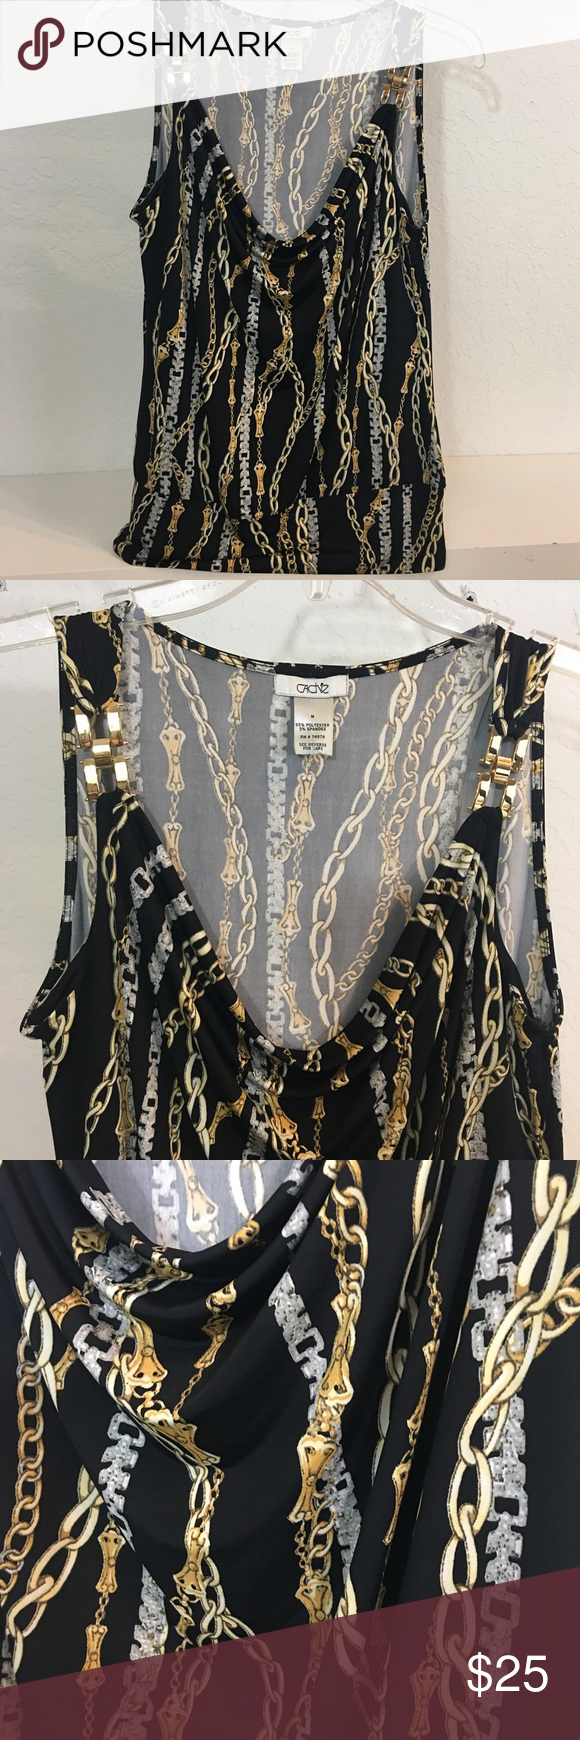 "Cache Spandex Black & Gold Print Sleeveless Blouse ✅Price Firm...Save With Bundles✅.  Excellent condition. Black, Gold & white Sleeveless print Polyester & Spandex Top. Bust: 36-38"". Cache Tops"